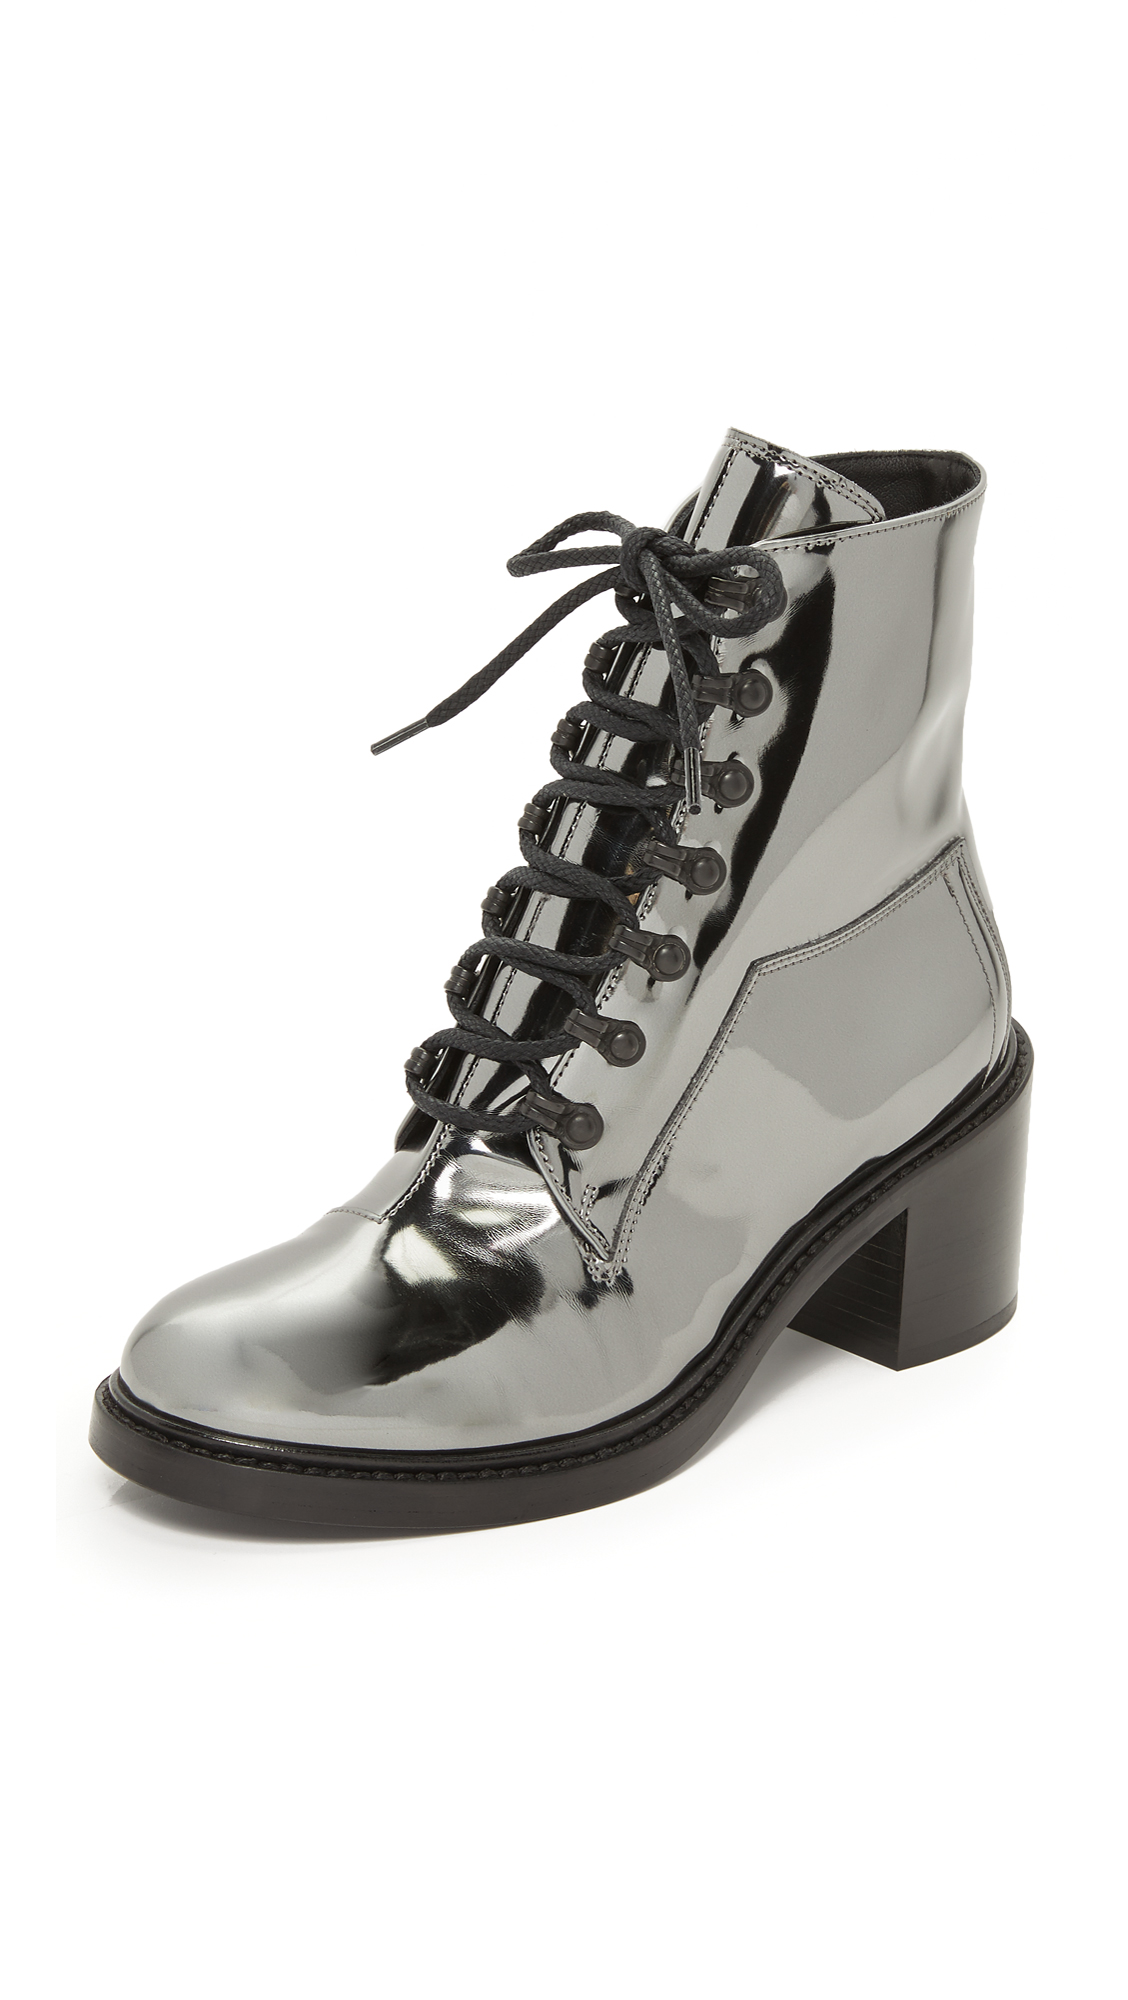 Mm6 Lace Up Booties - Steel